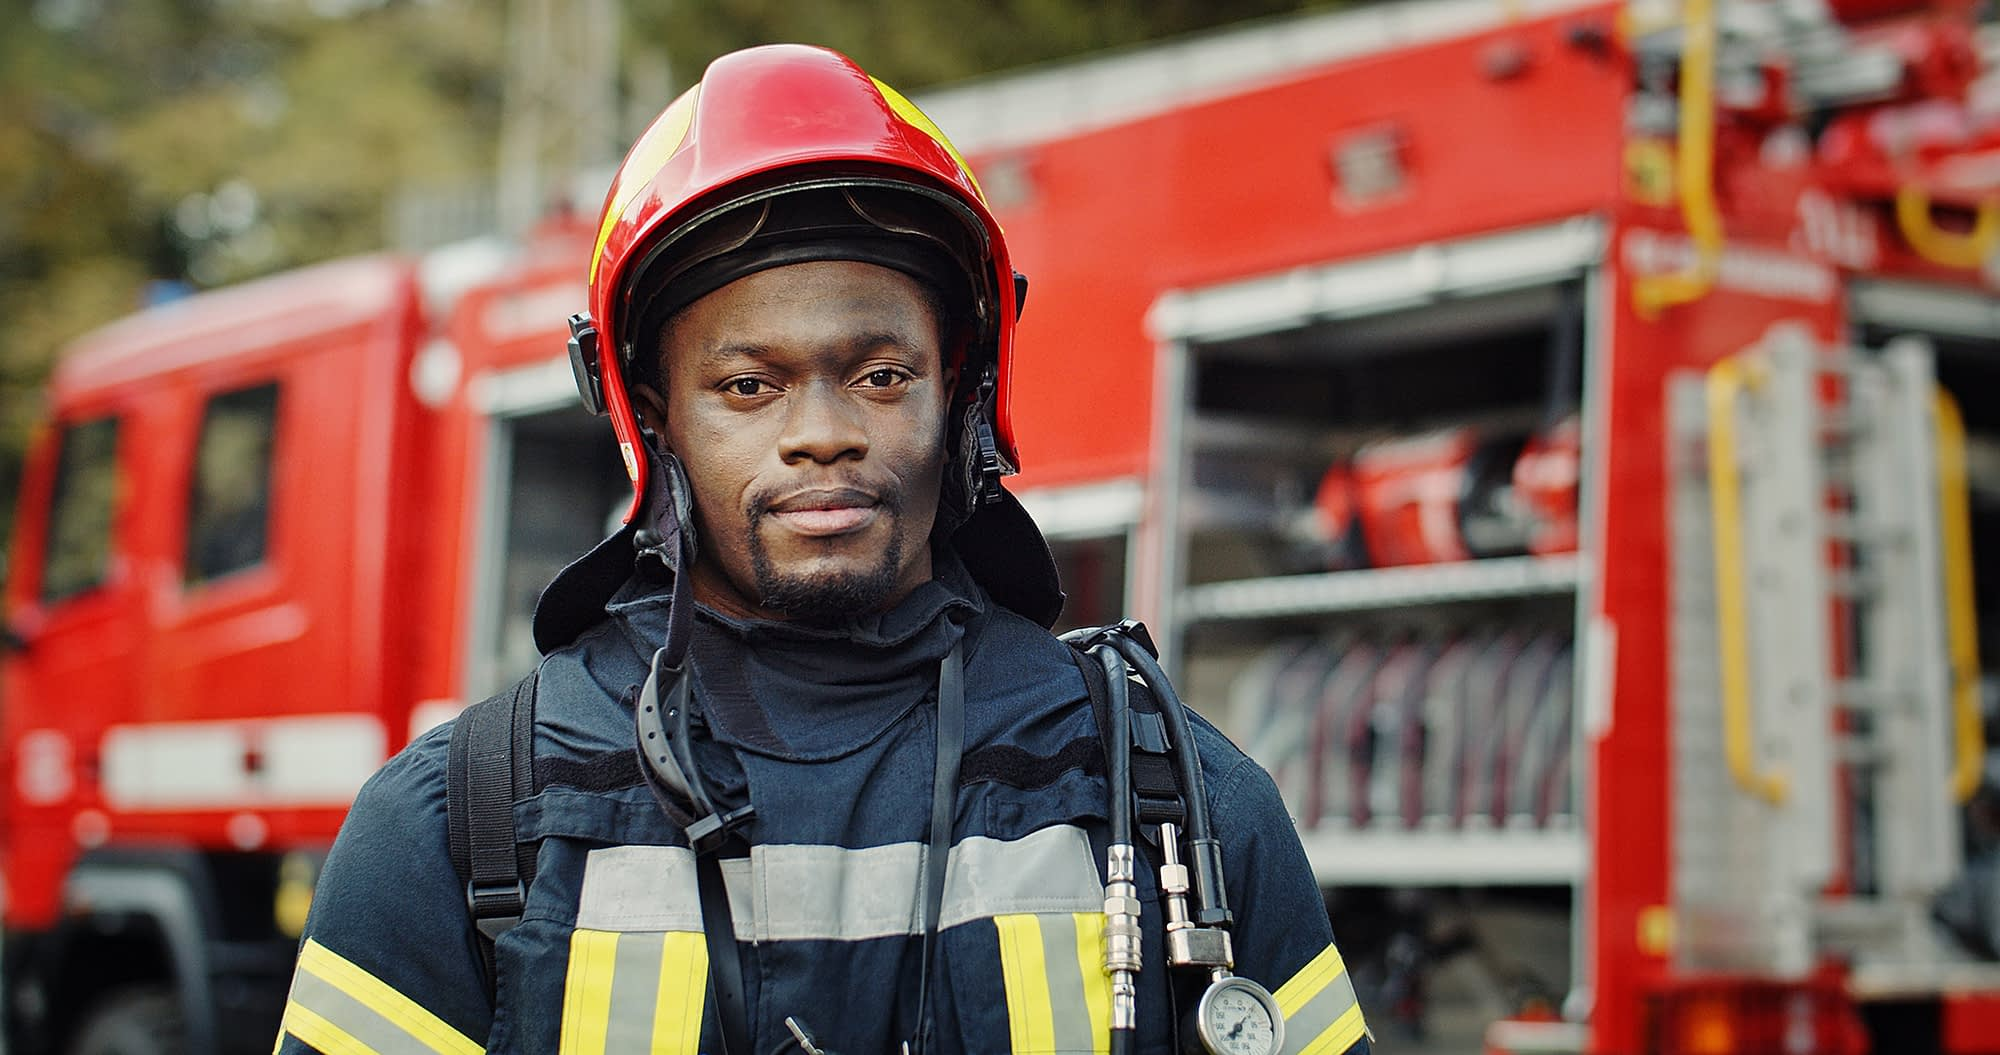 Firefighter Mental Health: How to Manage On and Off-Duty Issues